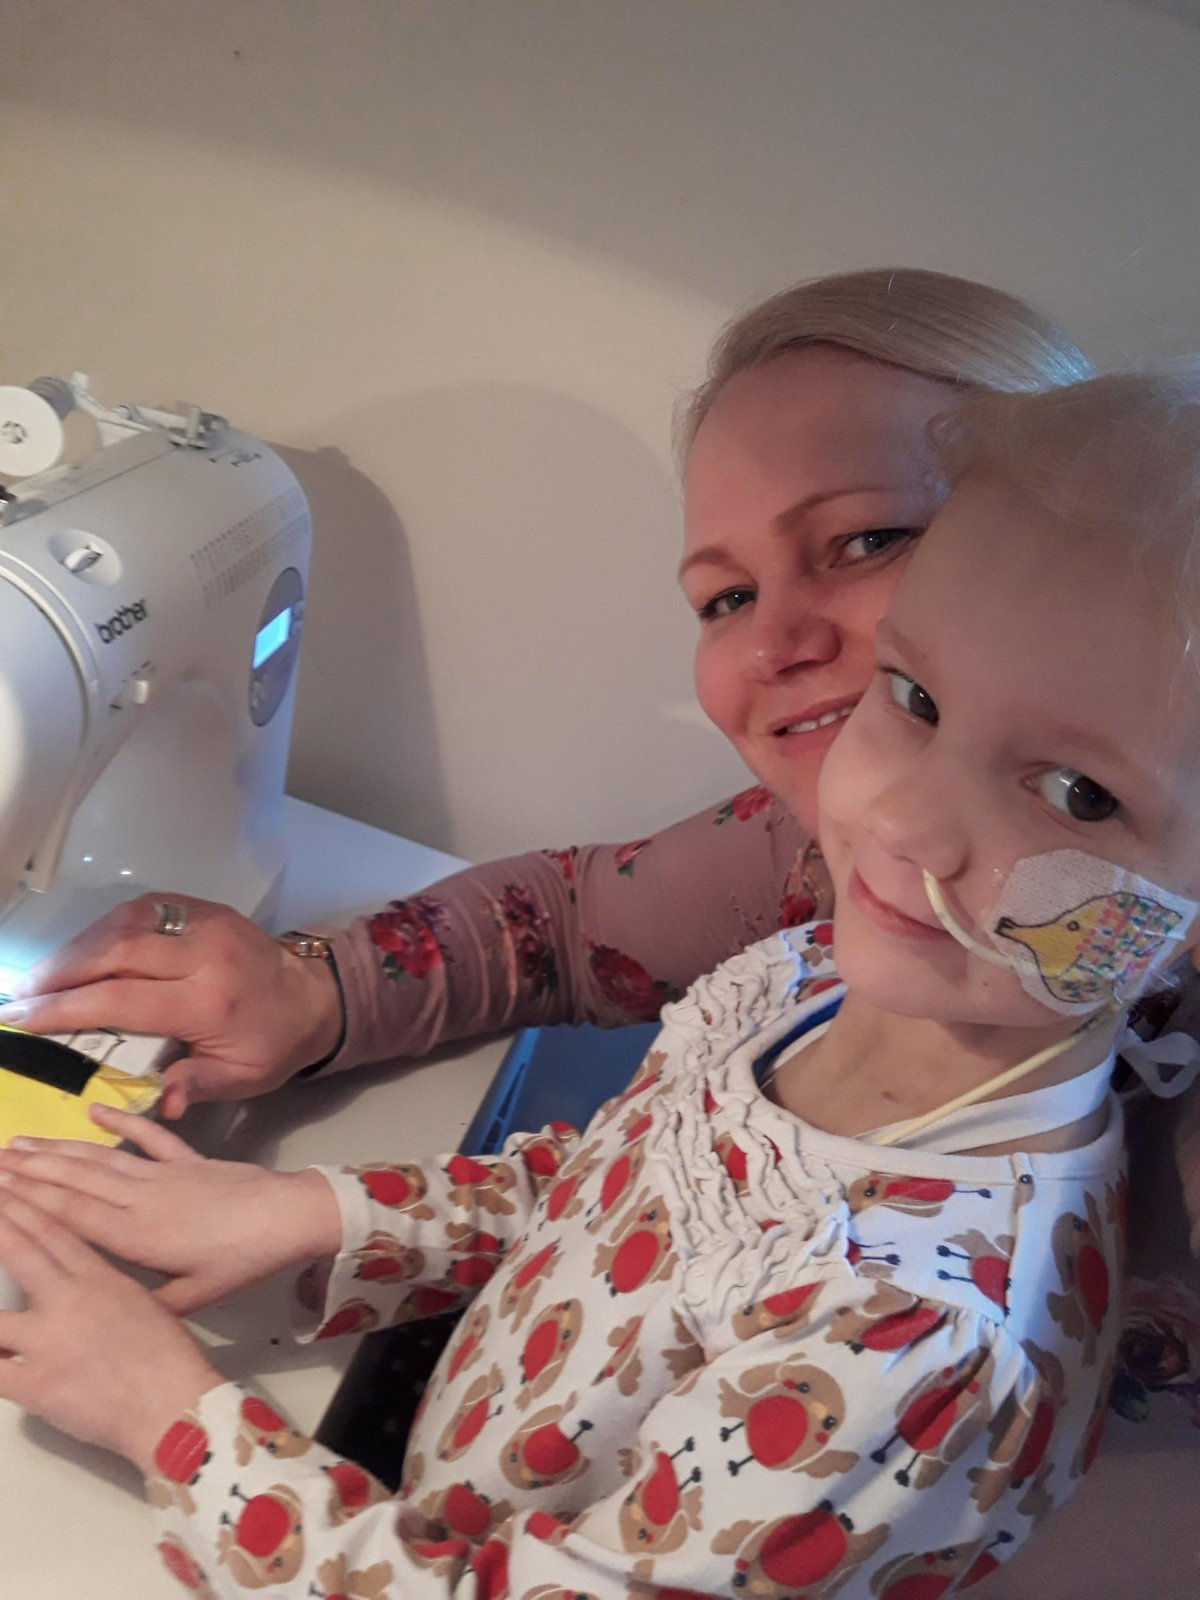 Author with daughter at sewing machine